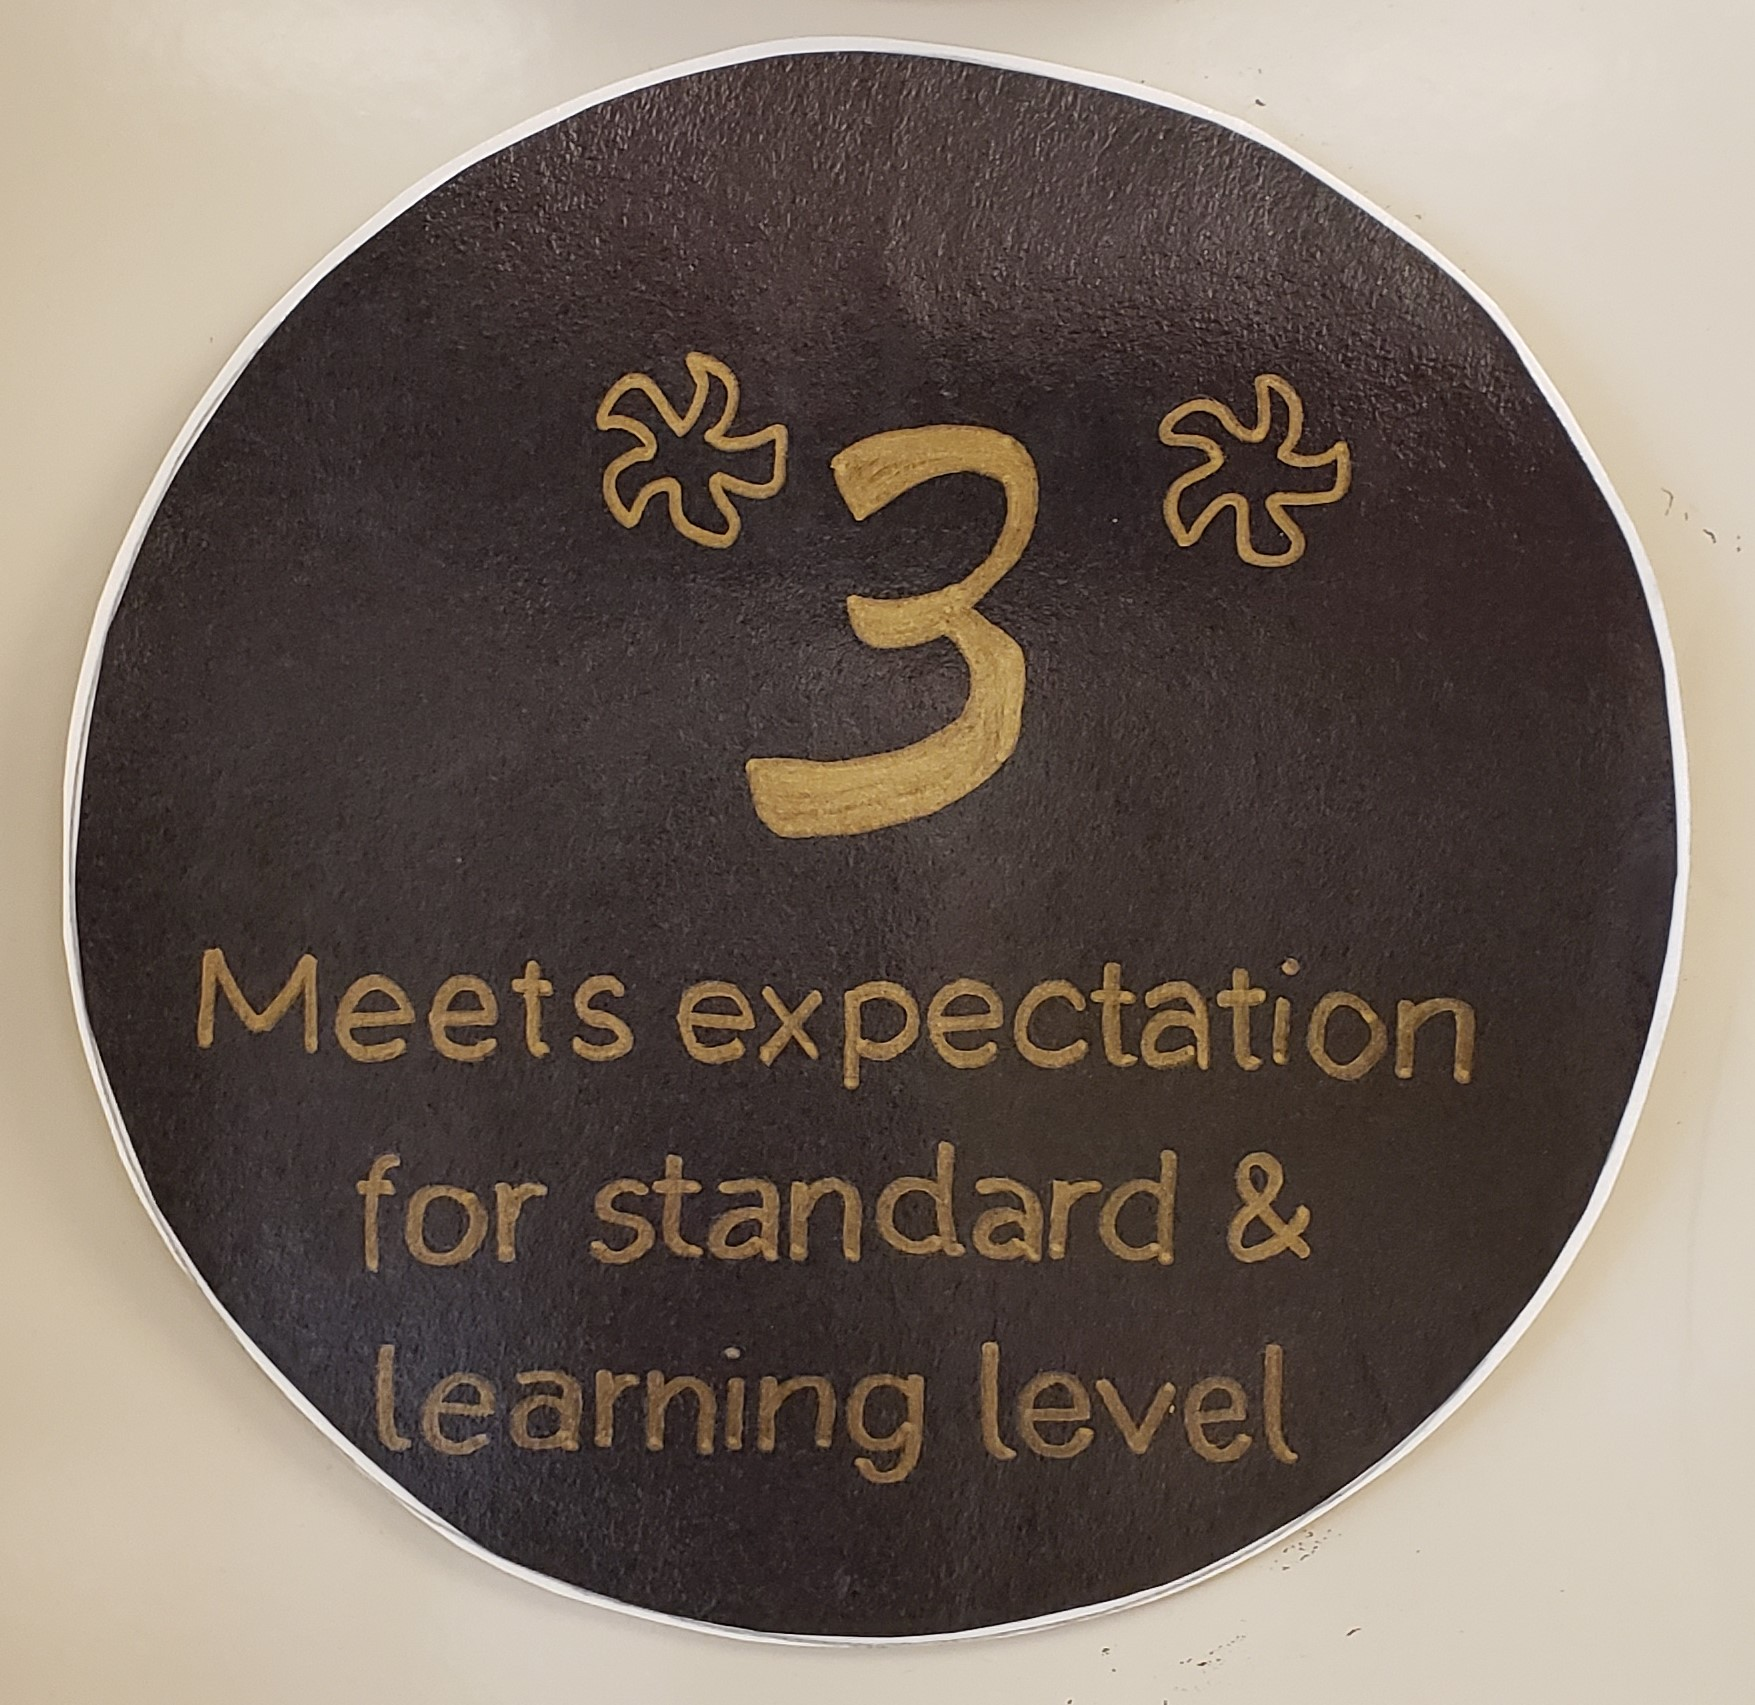 Wall Poster Showing Definition of Level 3